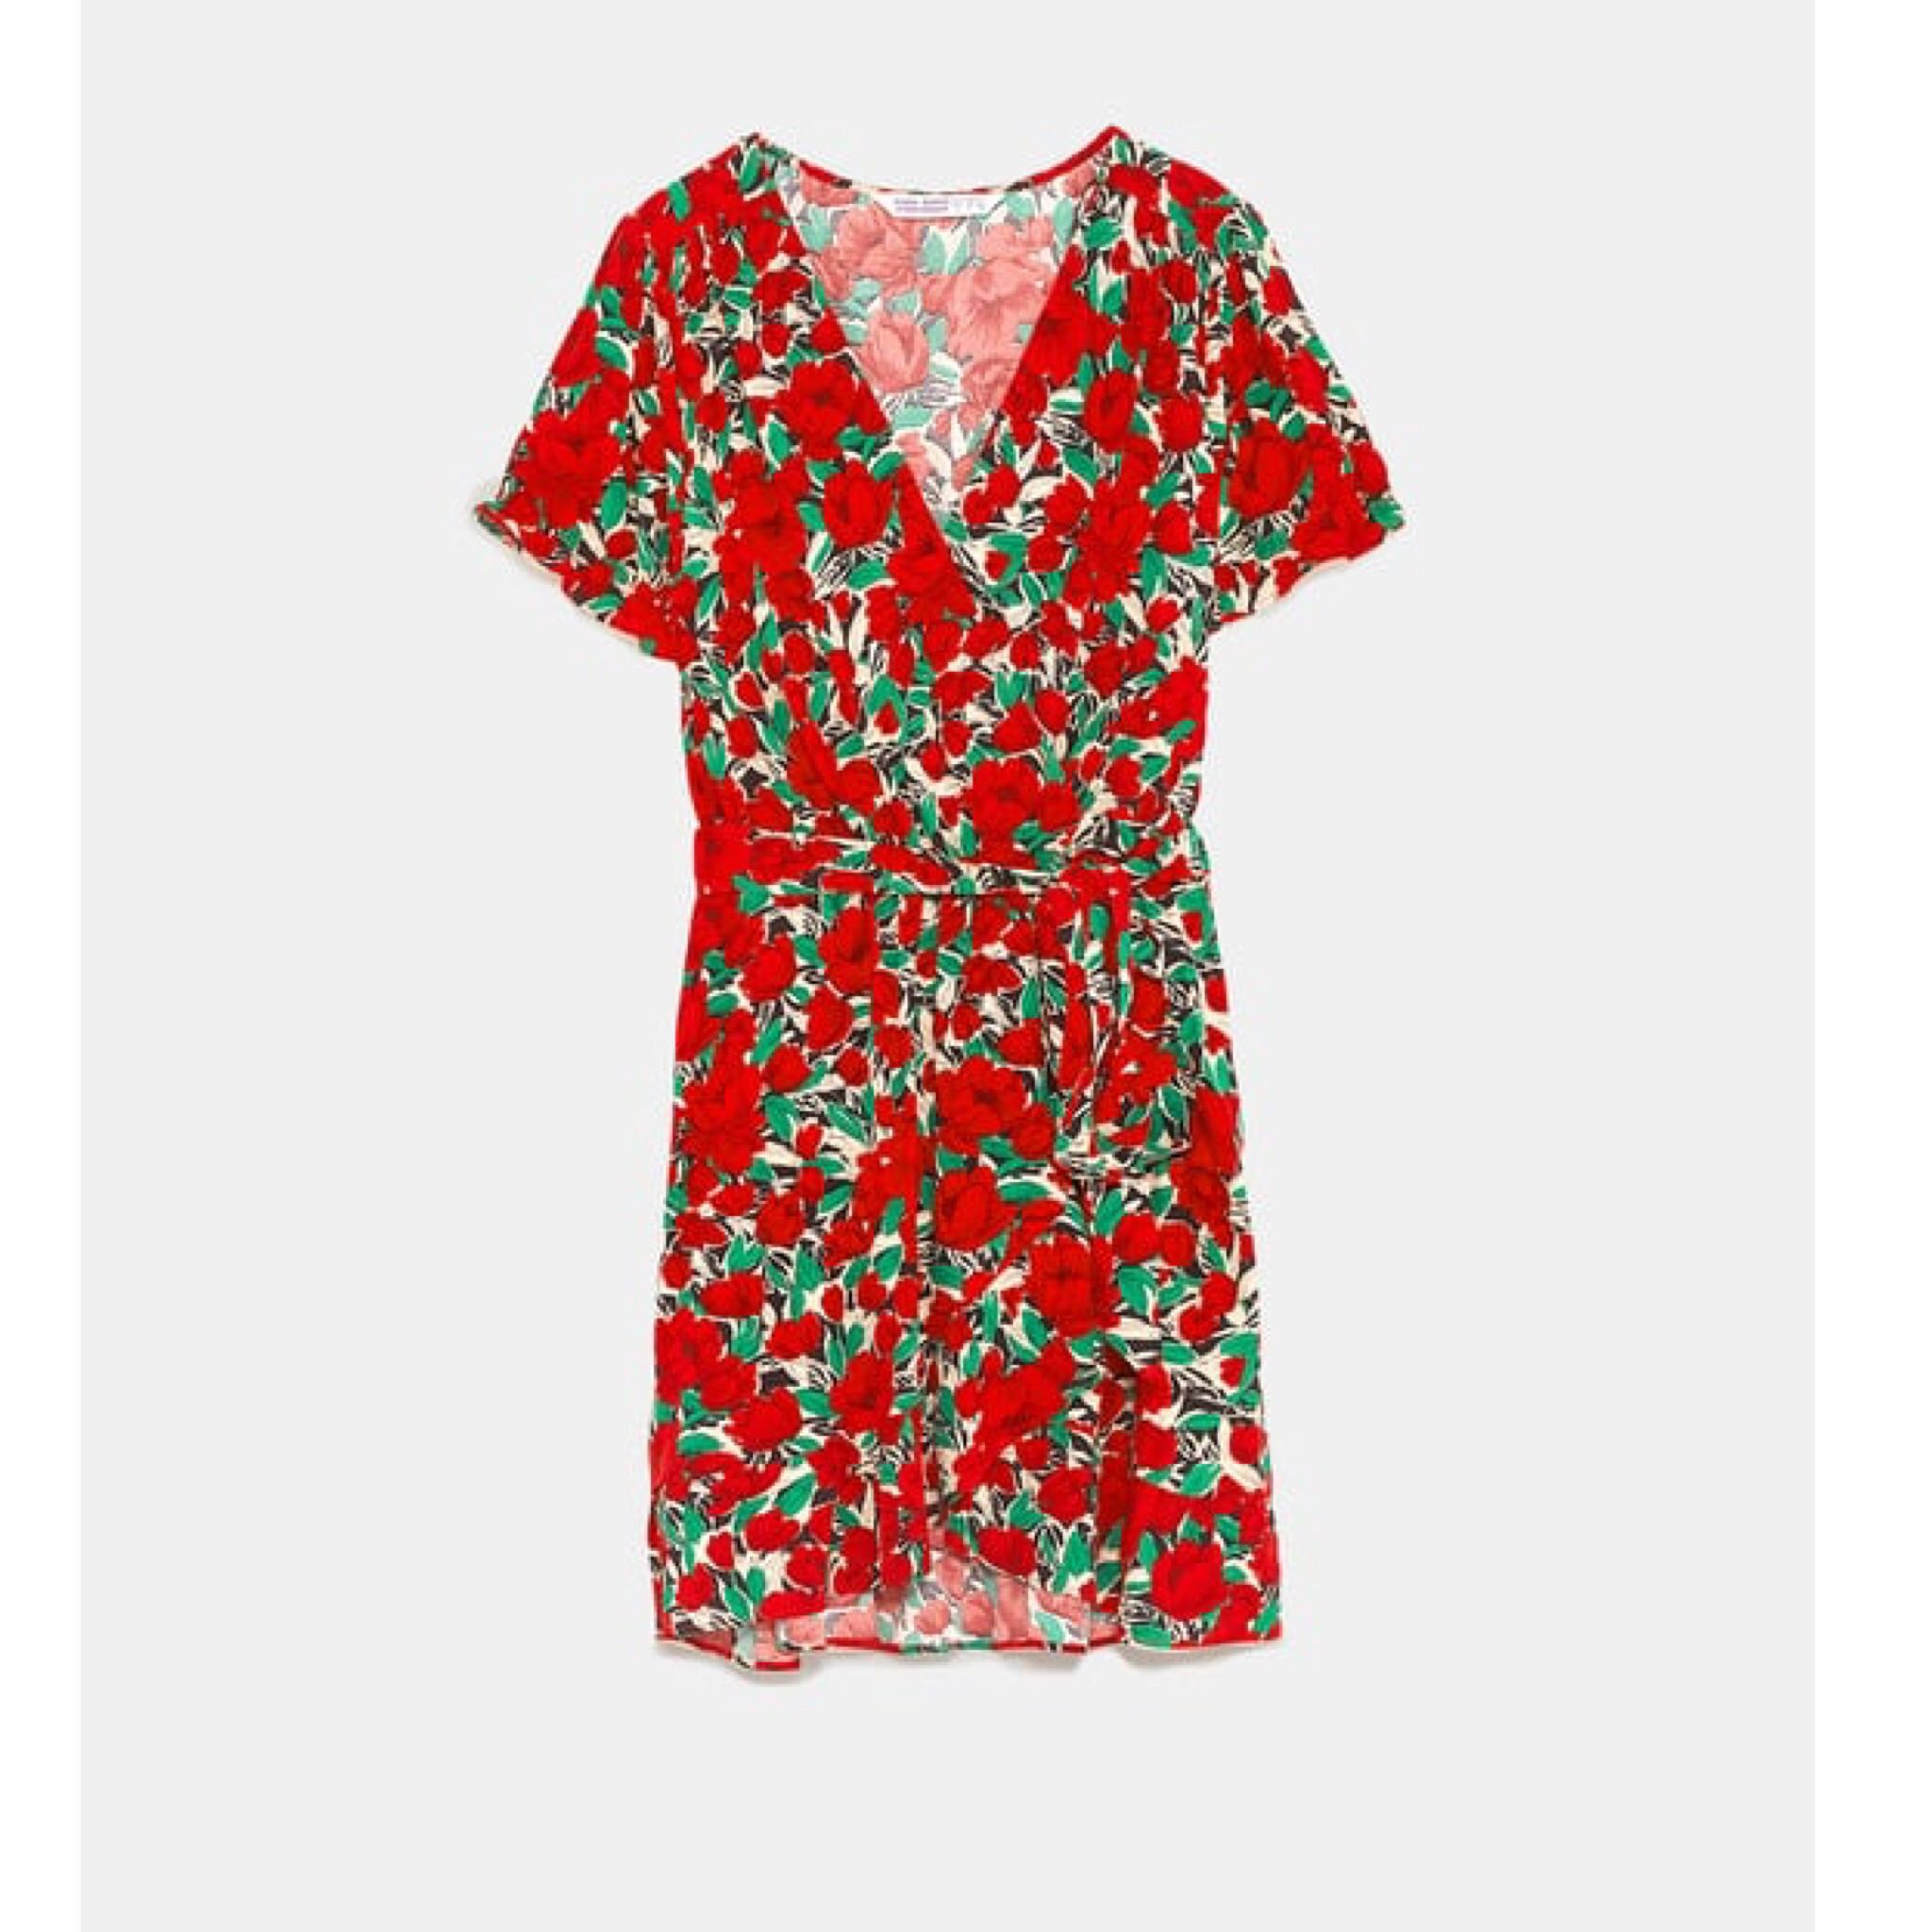 21ee6fe05c3 (BN) 💯 Authentic Zara Short Sleeve Crossover Dress with Floral Print size  XS, Women's Fashion, Clothes, Dresses & Skirts on Carousell